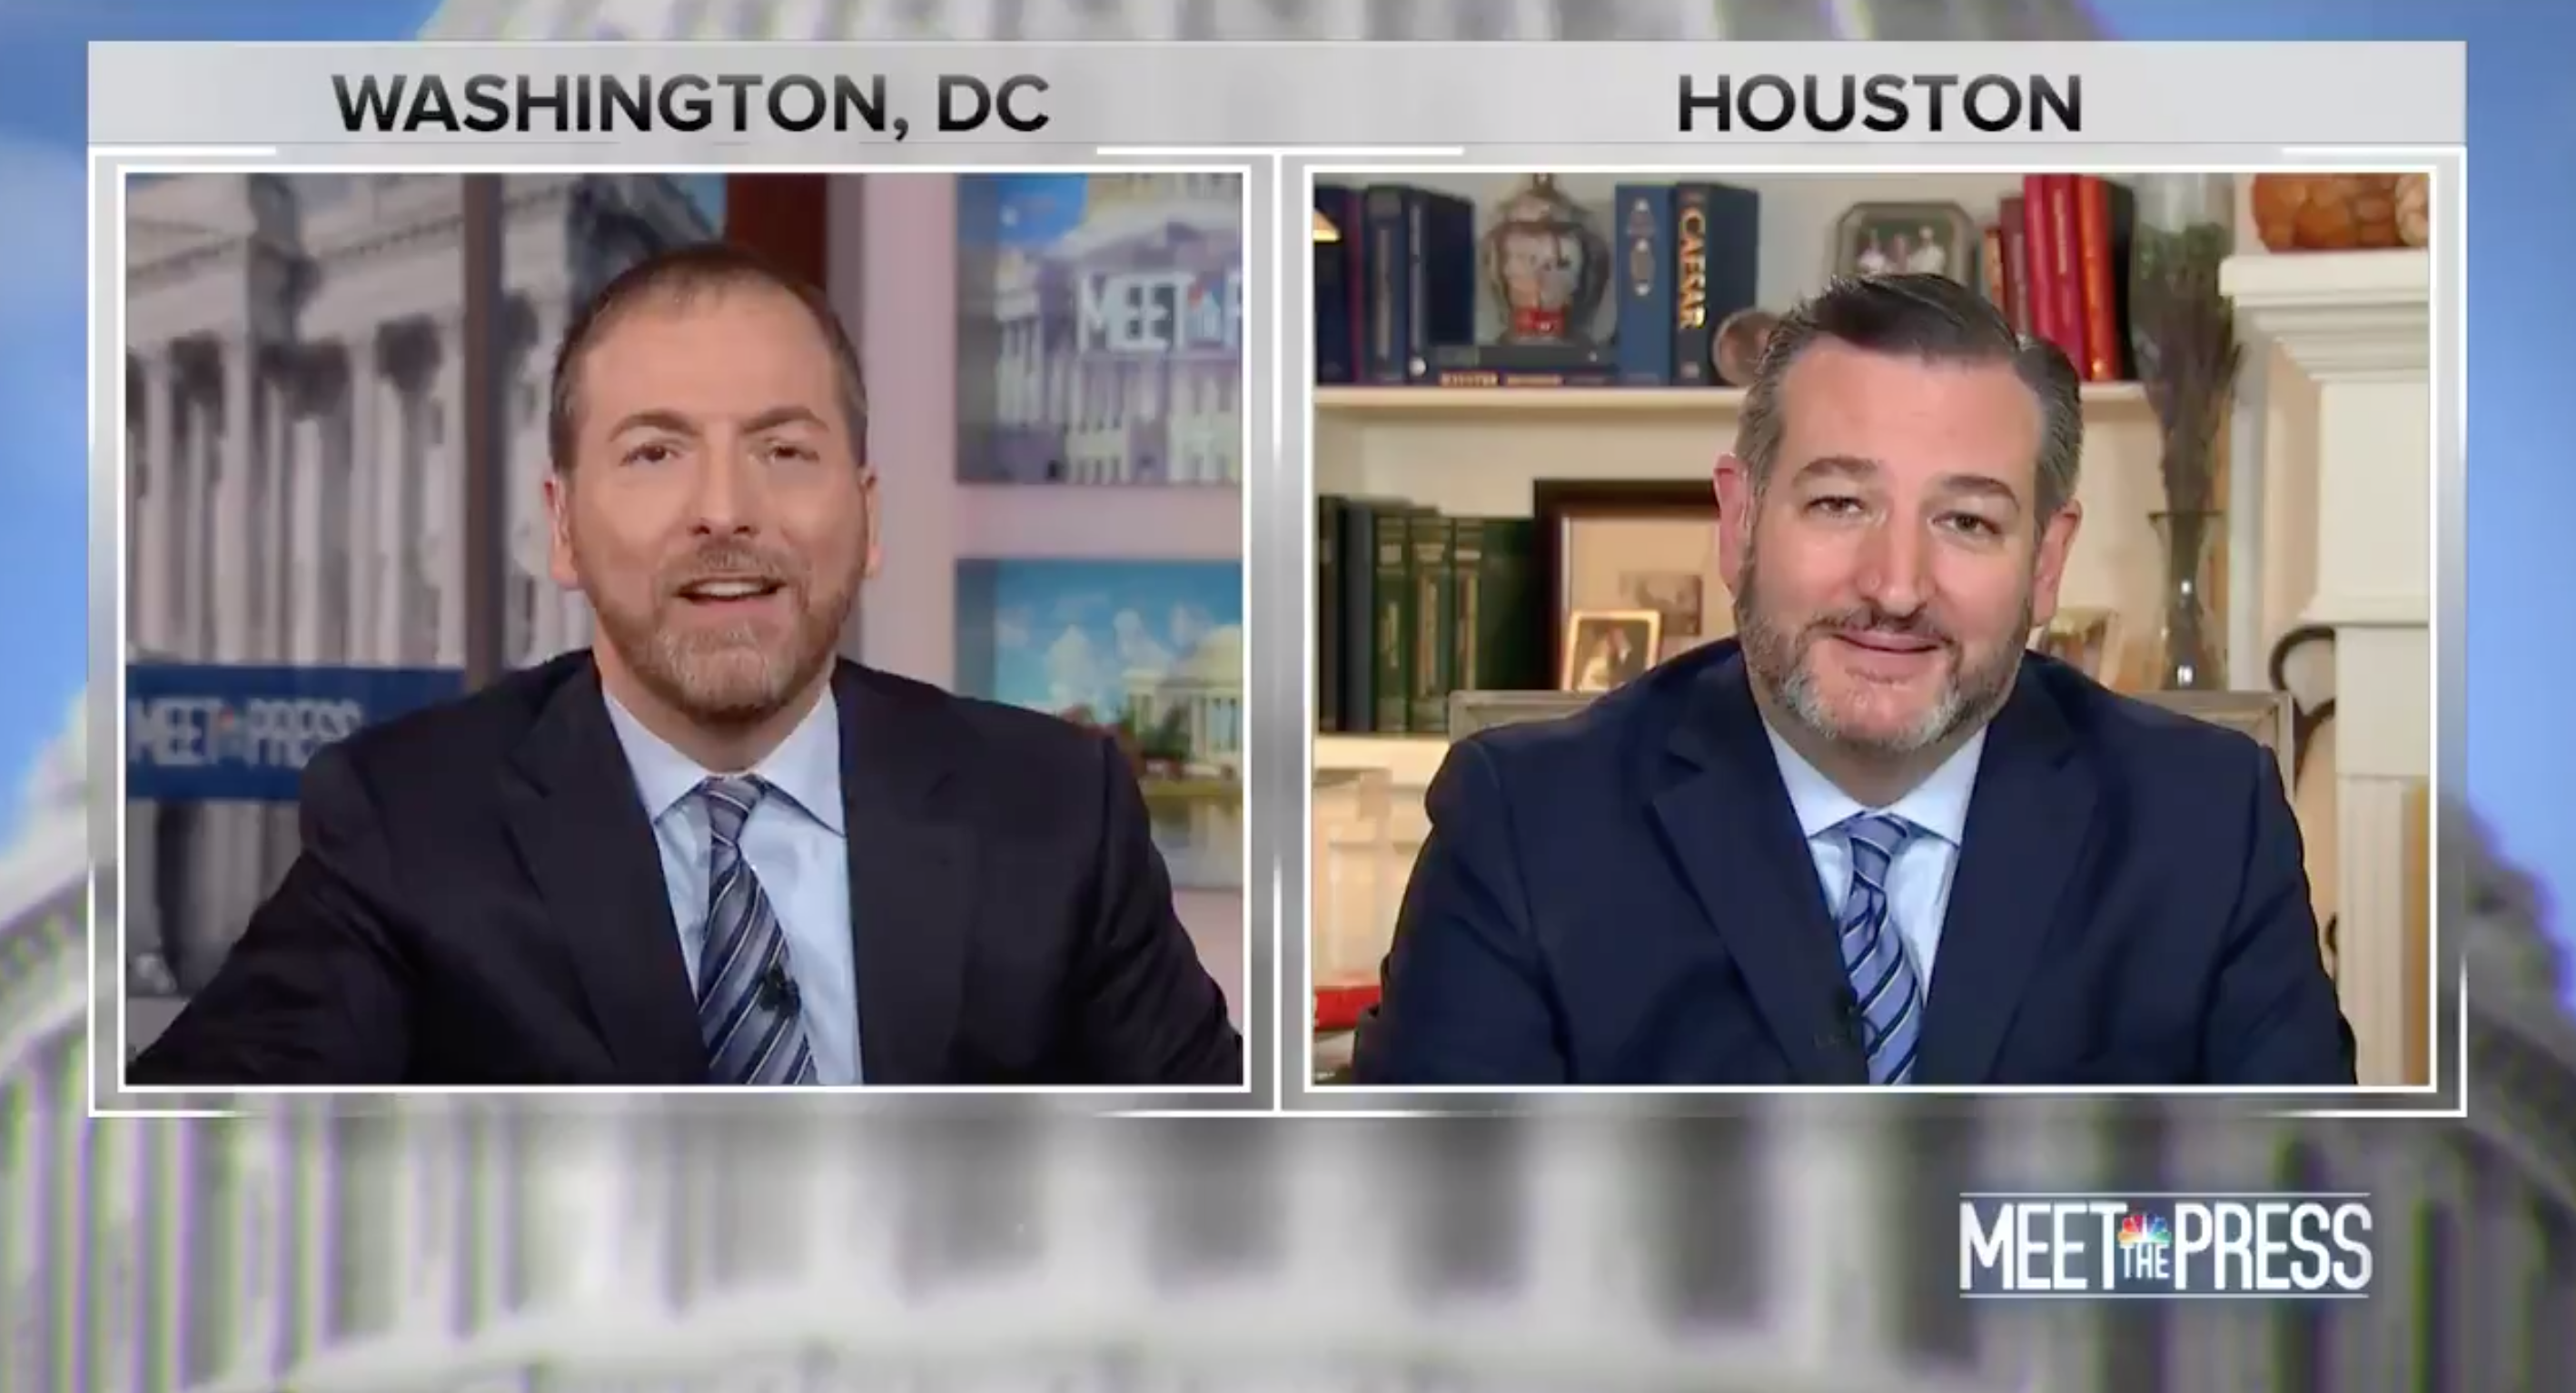 Ted Cruz Was Literally Laughed At During His Appearance On Meet the Press